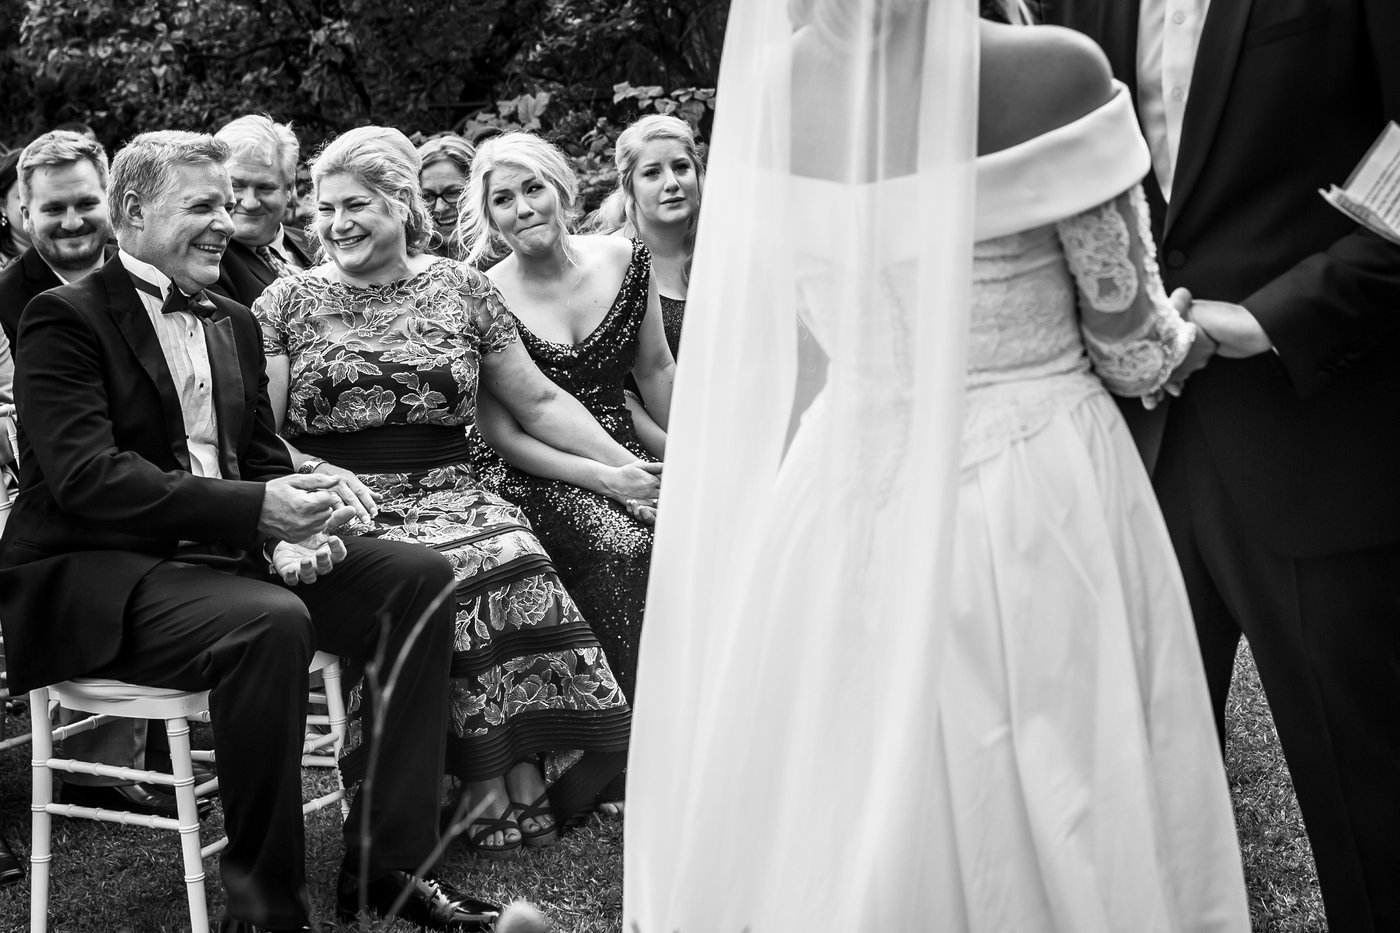 Family laughing and smiling during outdoor wedding ceremony